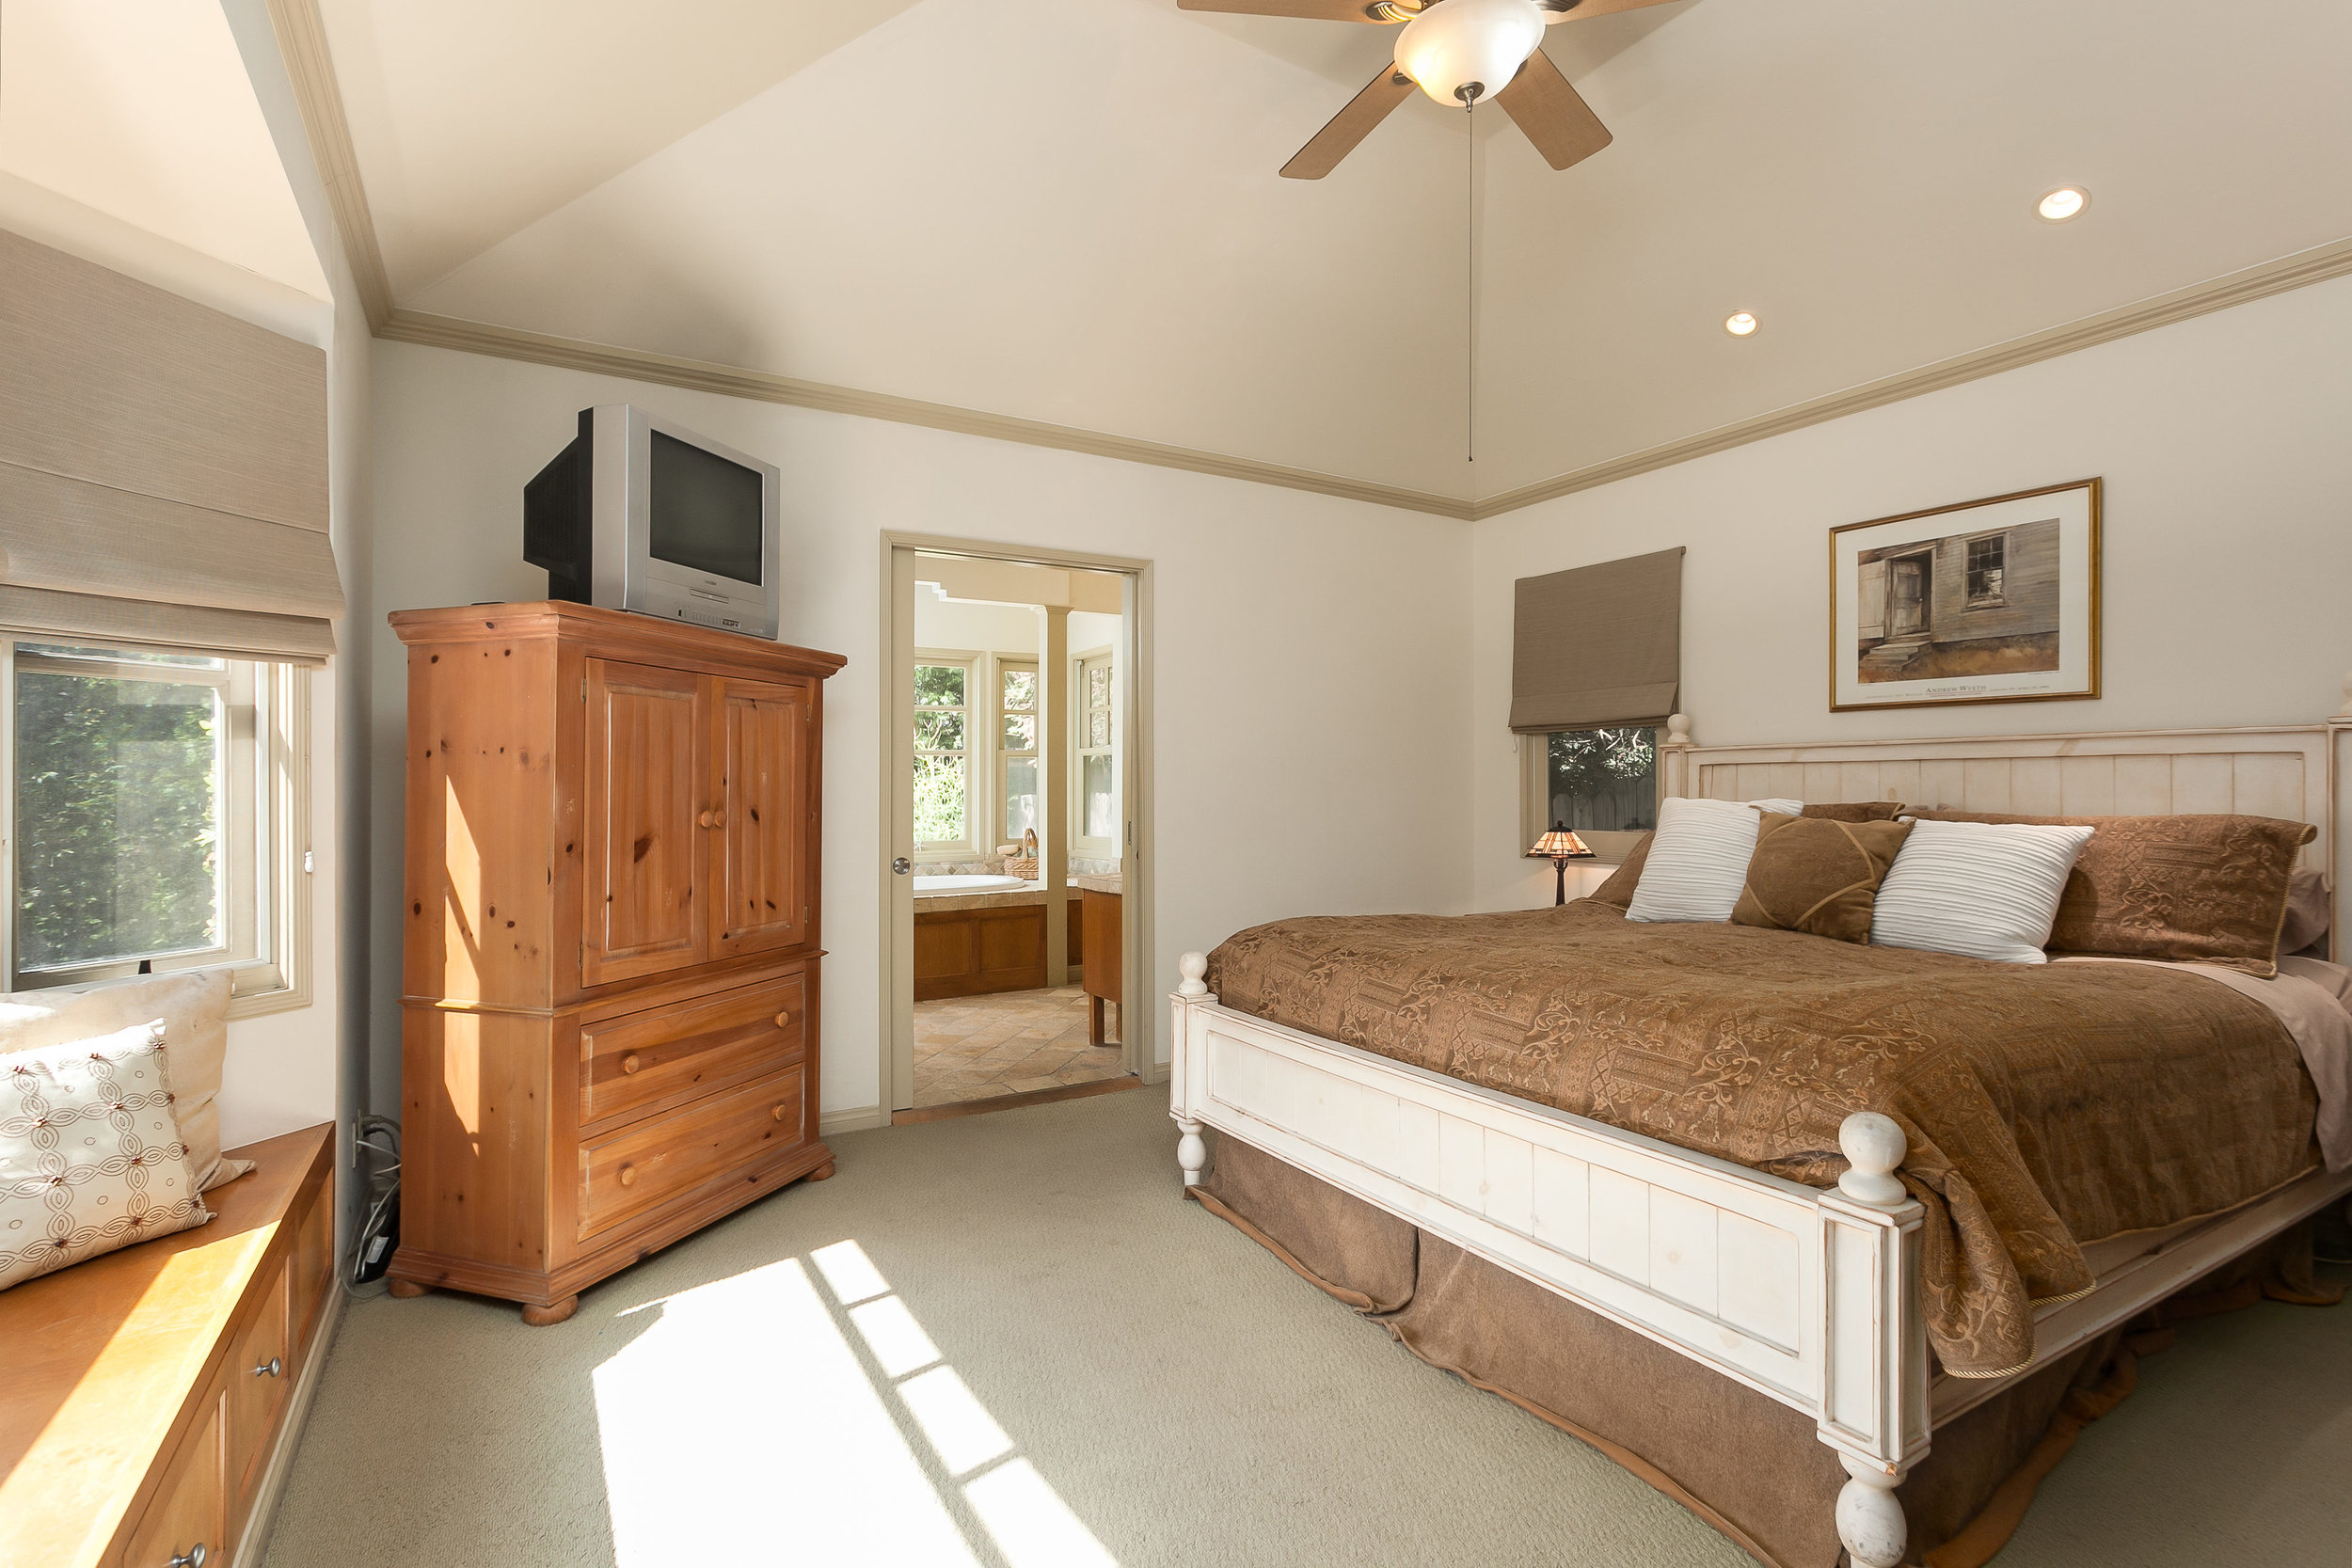 4107 Goodland Ave Studio City-print-018-17-Master Bedroom-3863x2576-300dpi.jpg